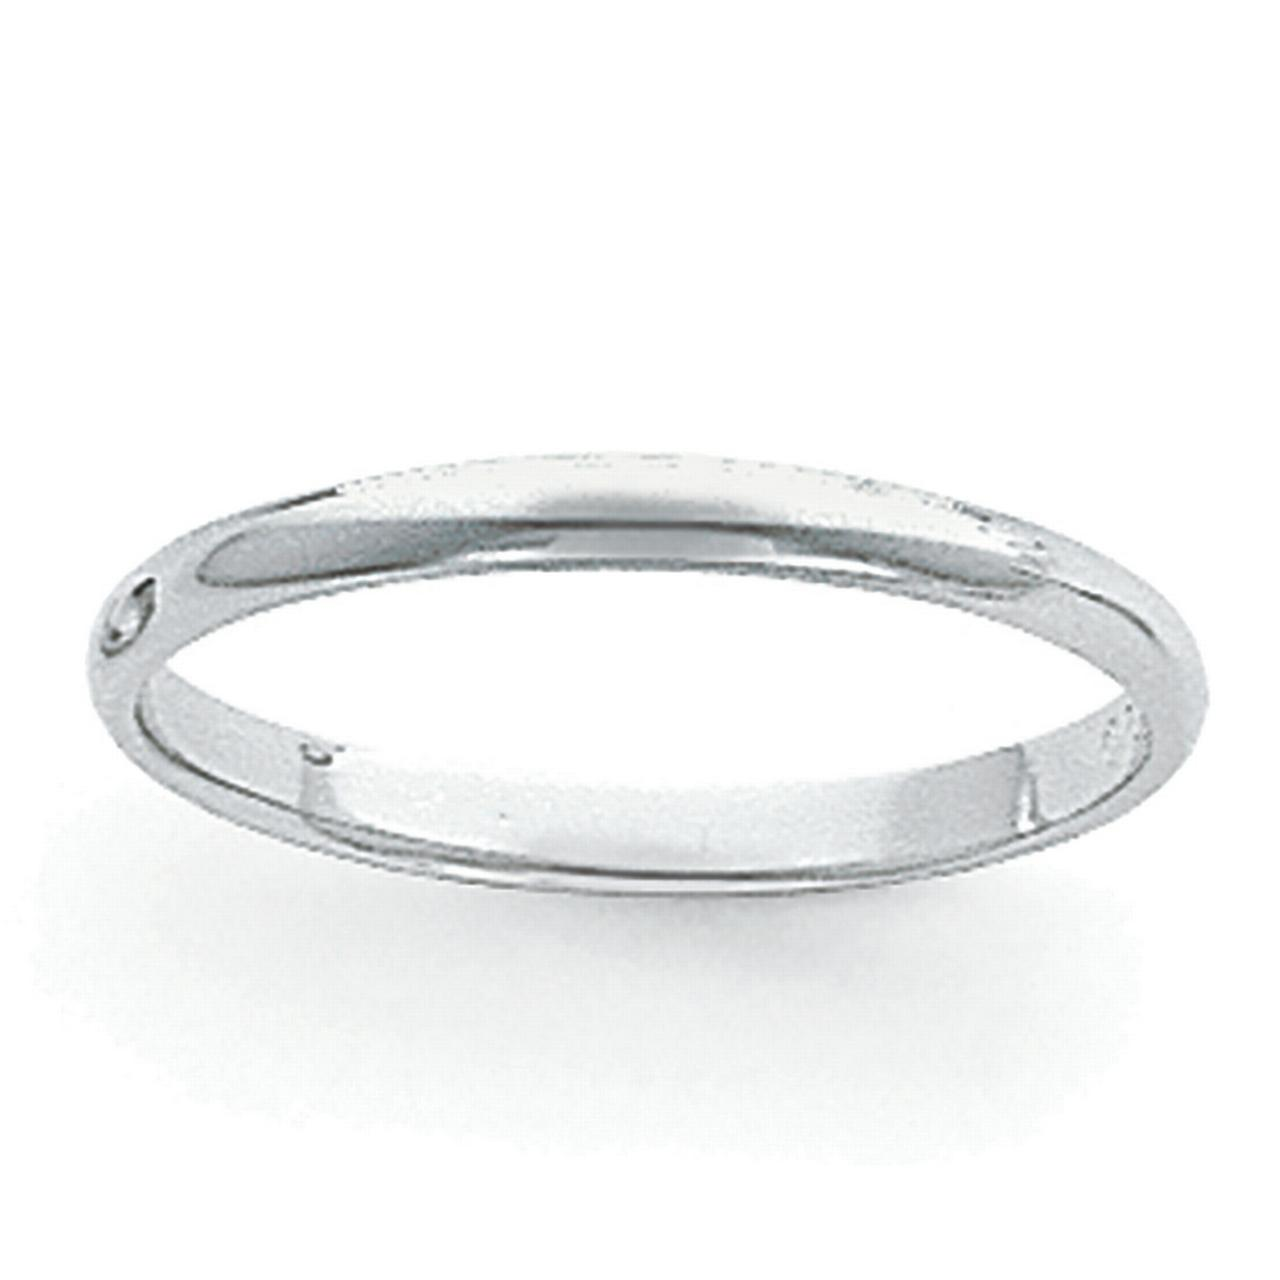 Platinum 3mm Half-Round Featherweight Band Ring PLWHR030 by